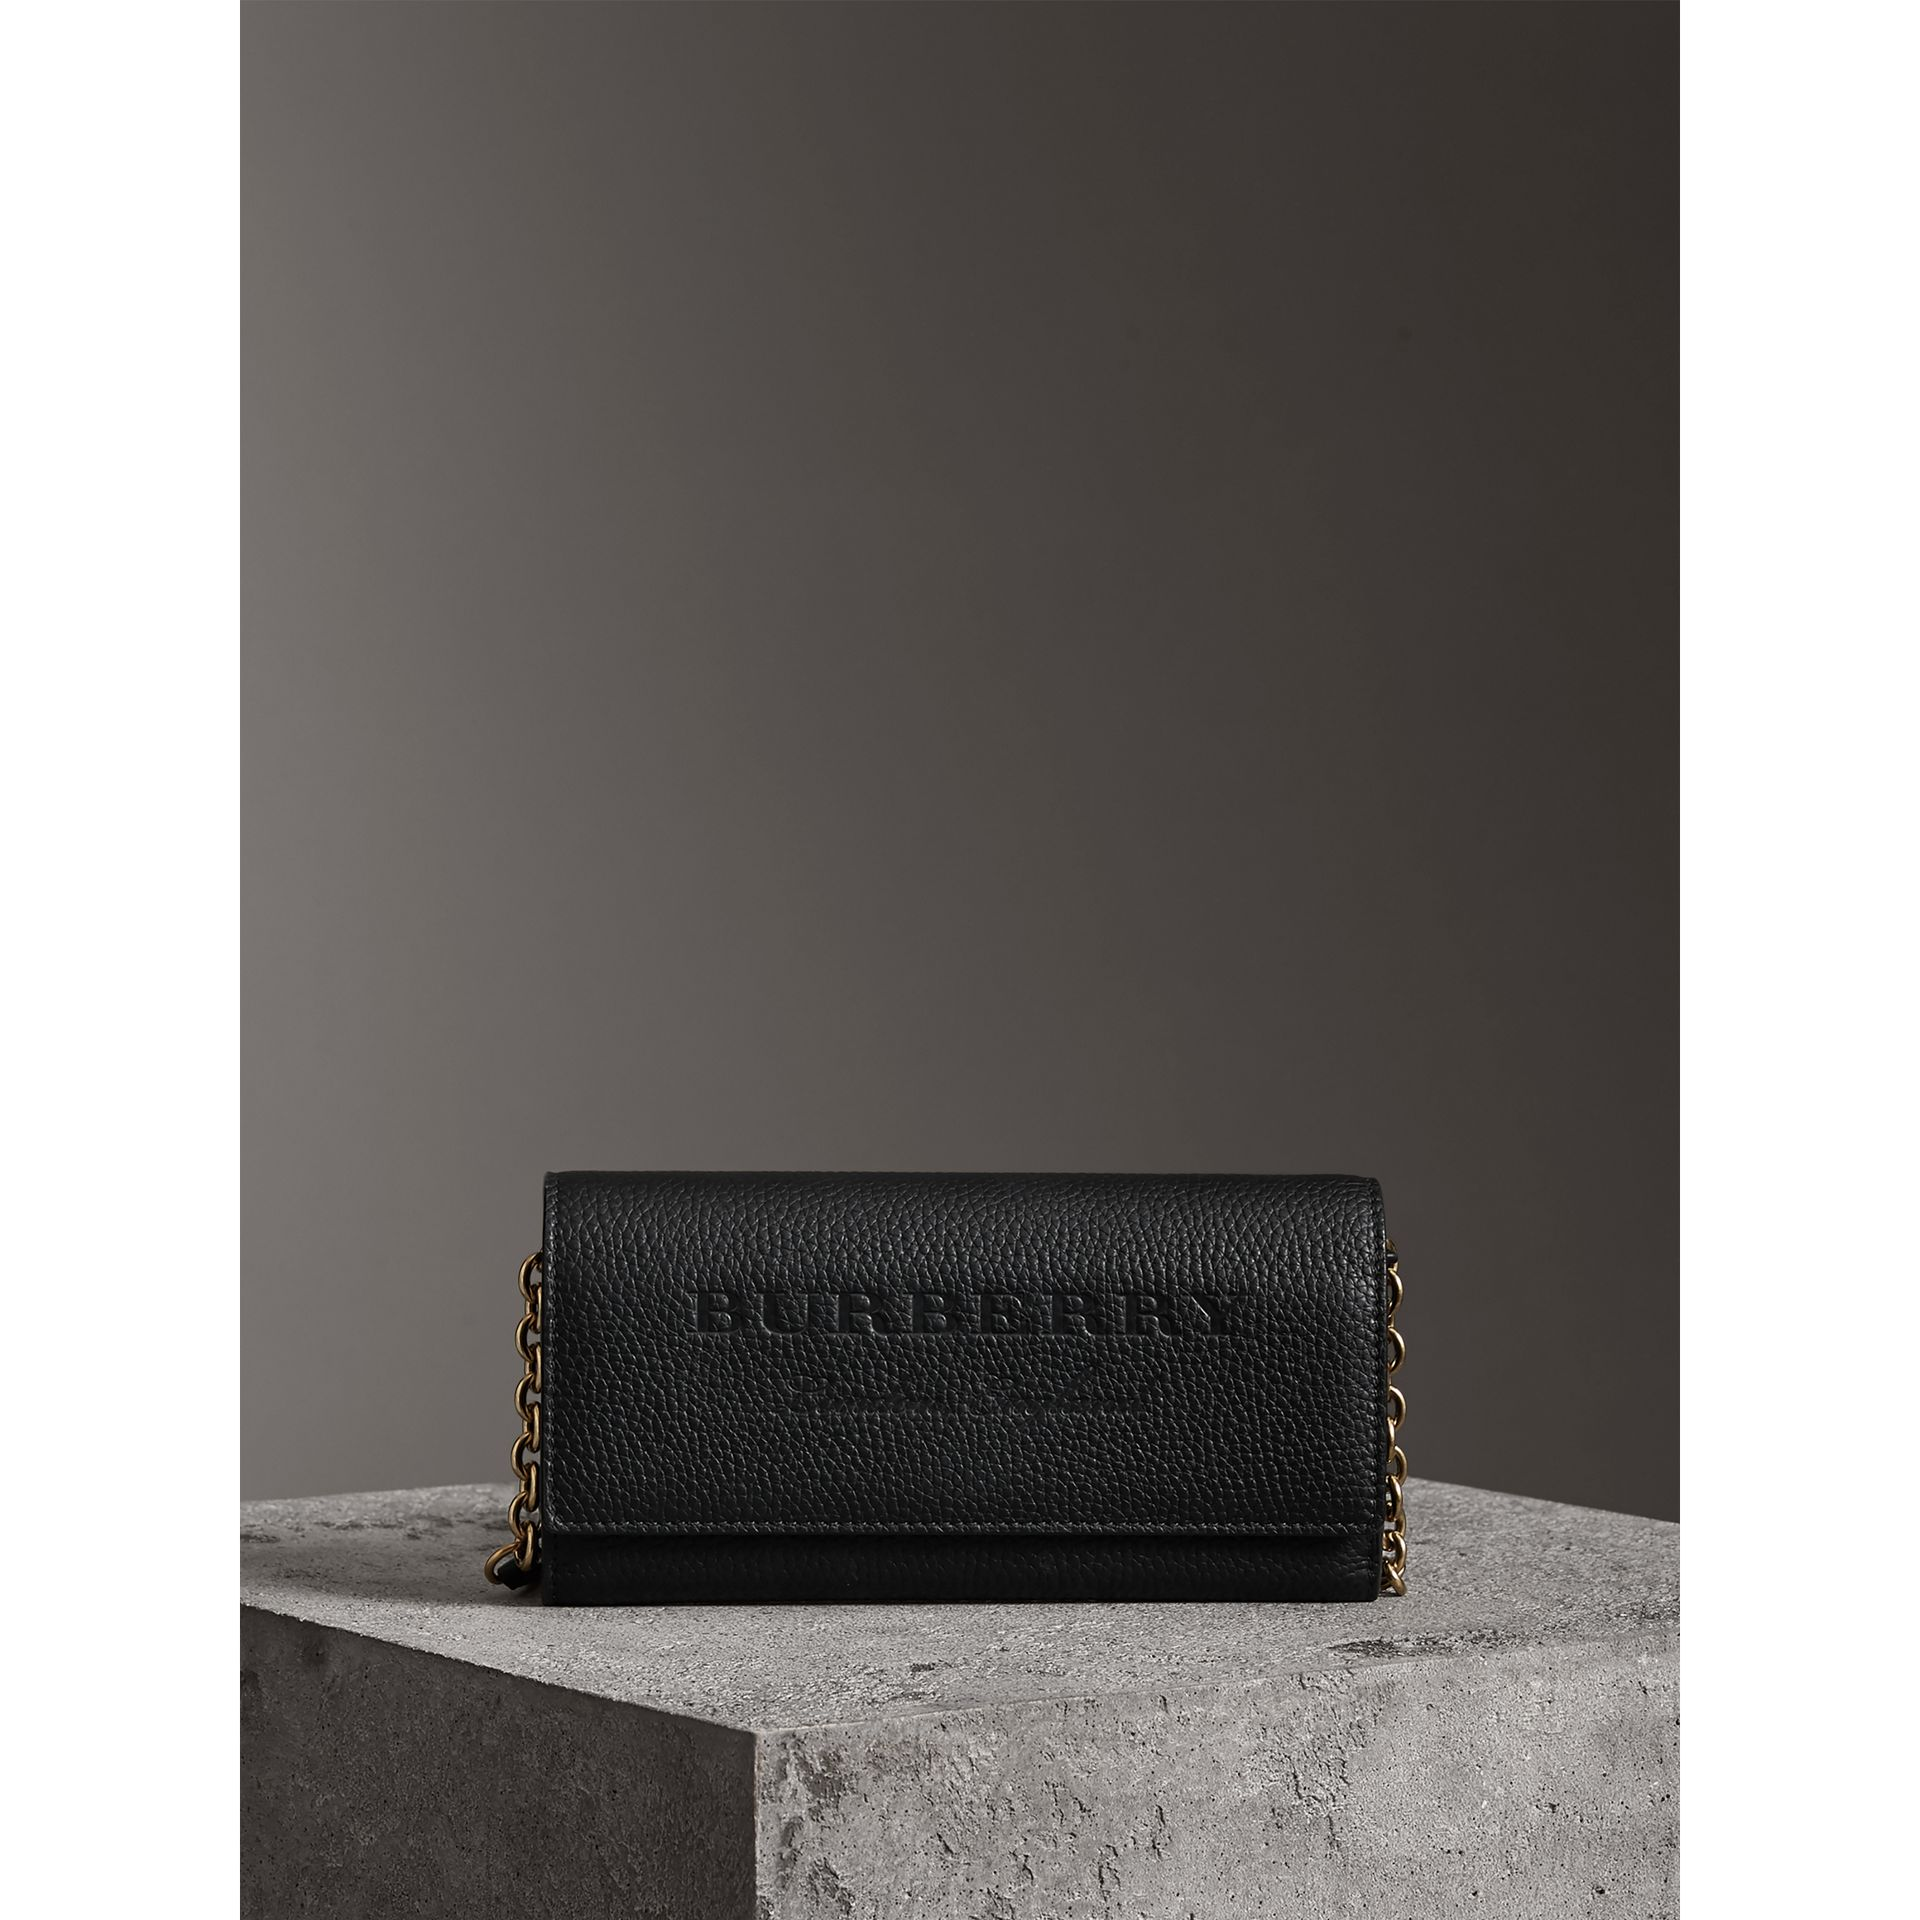 Embossed Leather Wallet with Chain in Black - Women | Burberry - gallery image 6